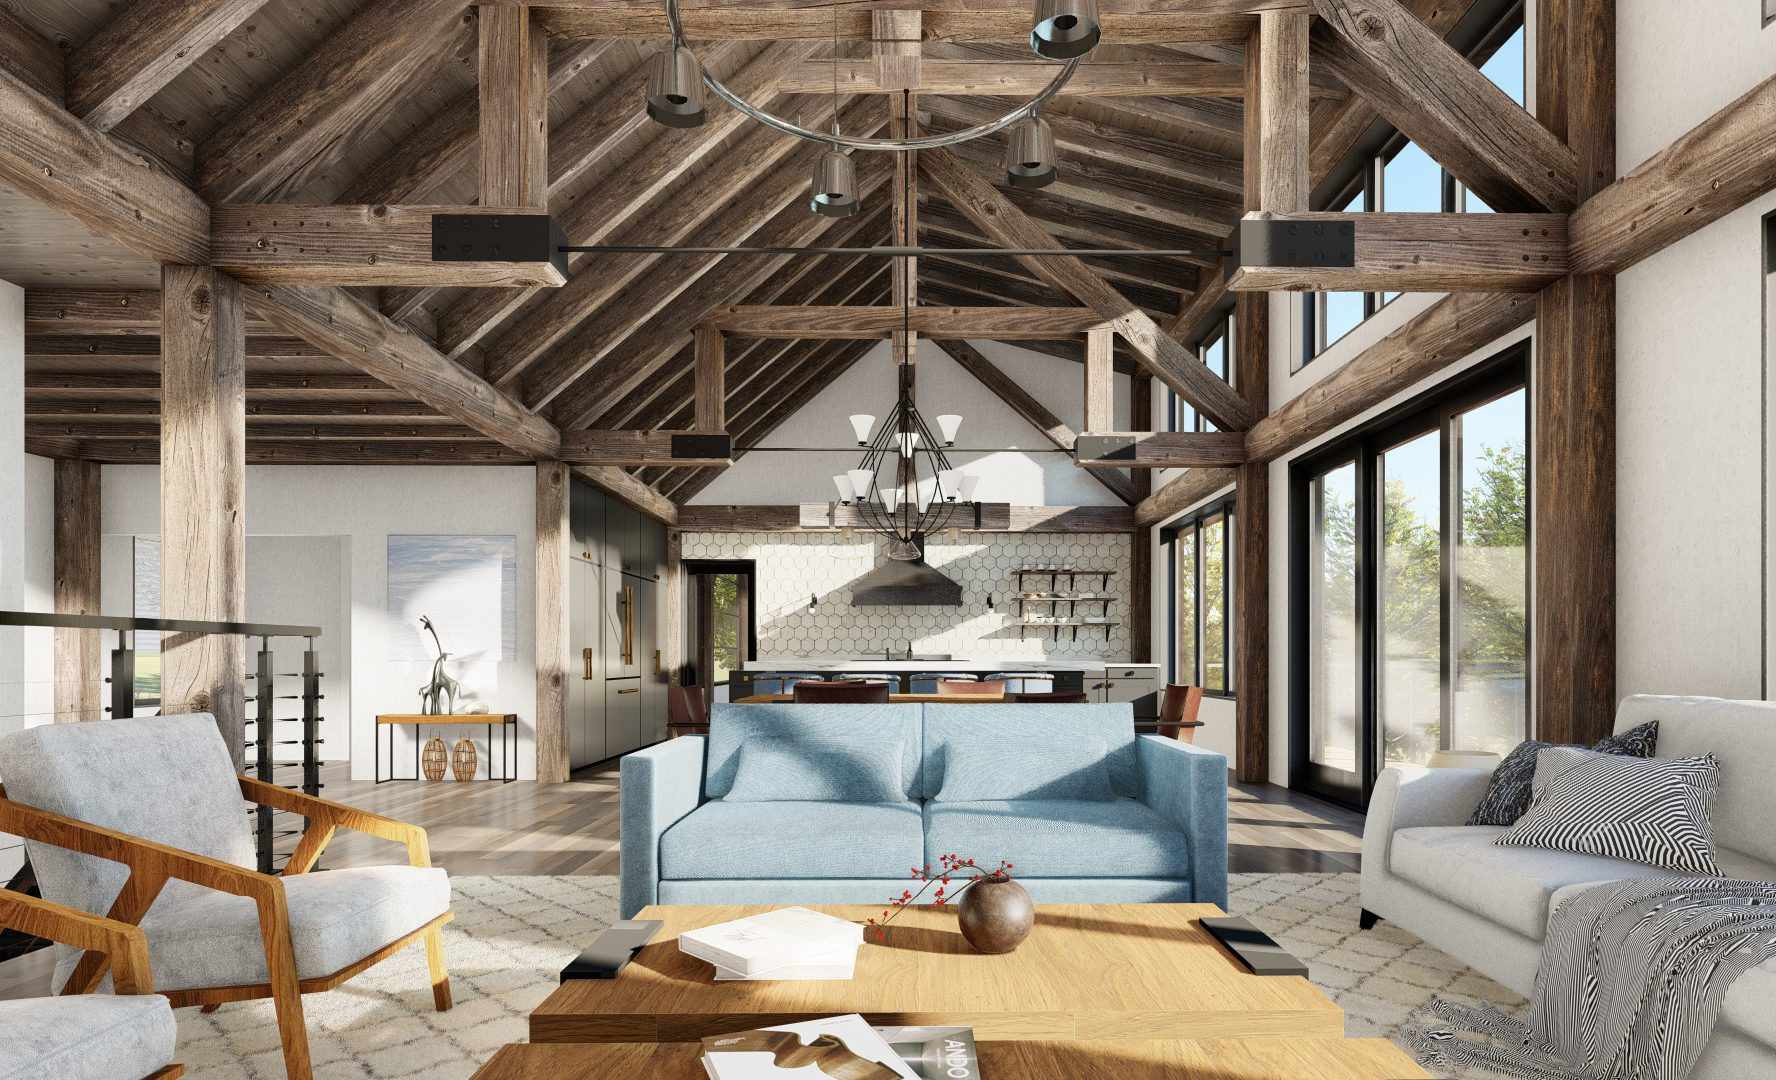 Normerica Timber Frames, House Plan, The Redstone 3920, Interior, Living Room, Open Concept, Cathedral Ceiling